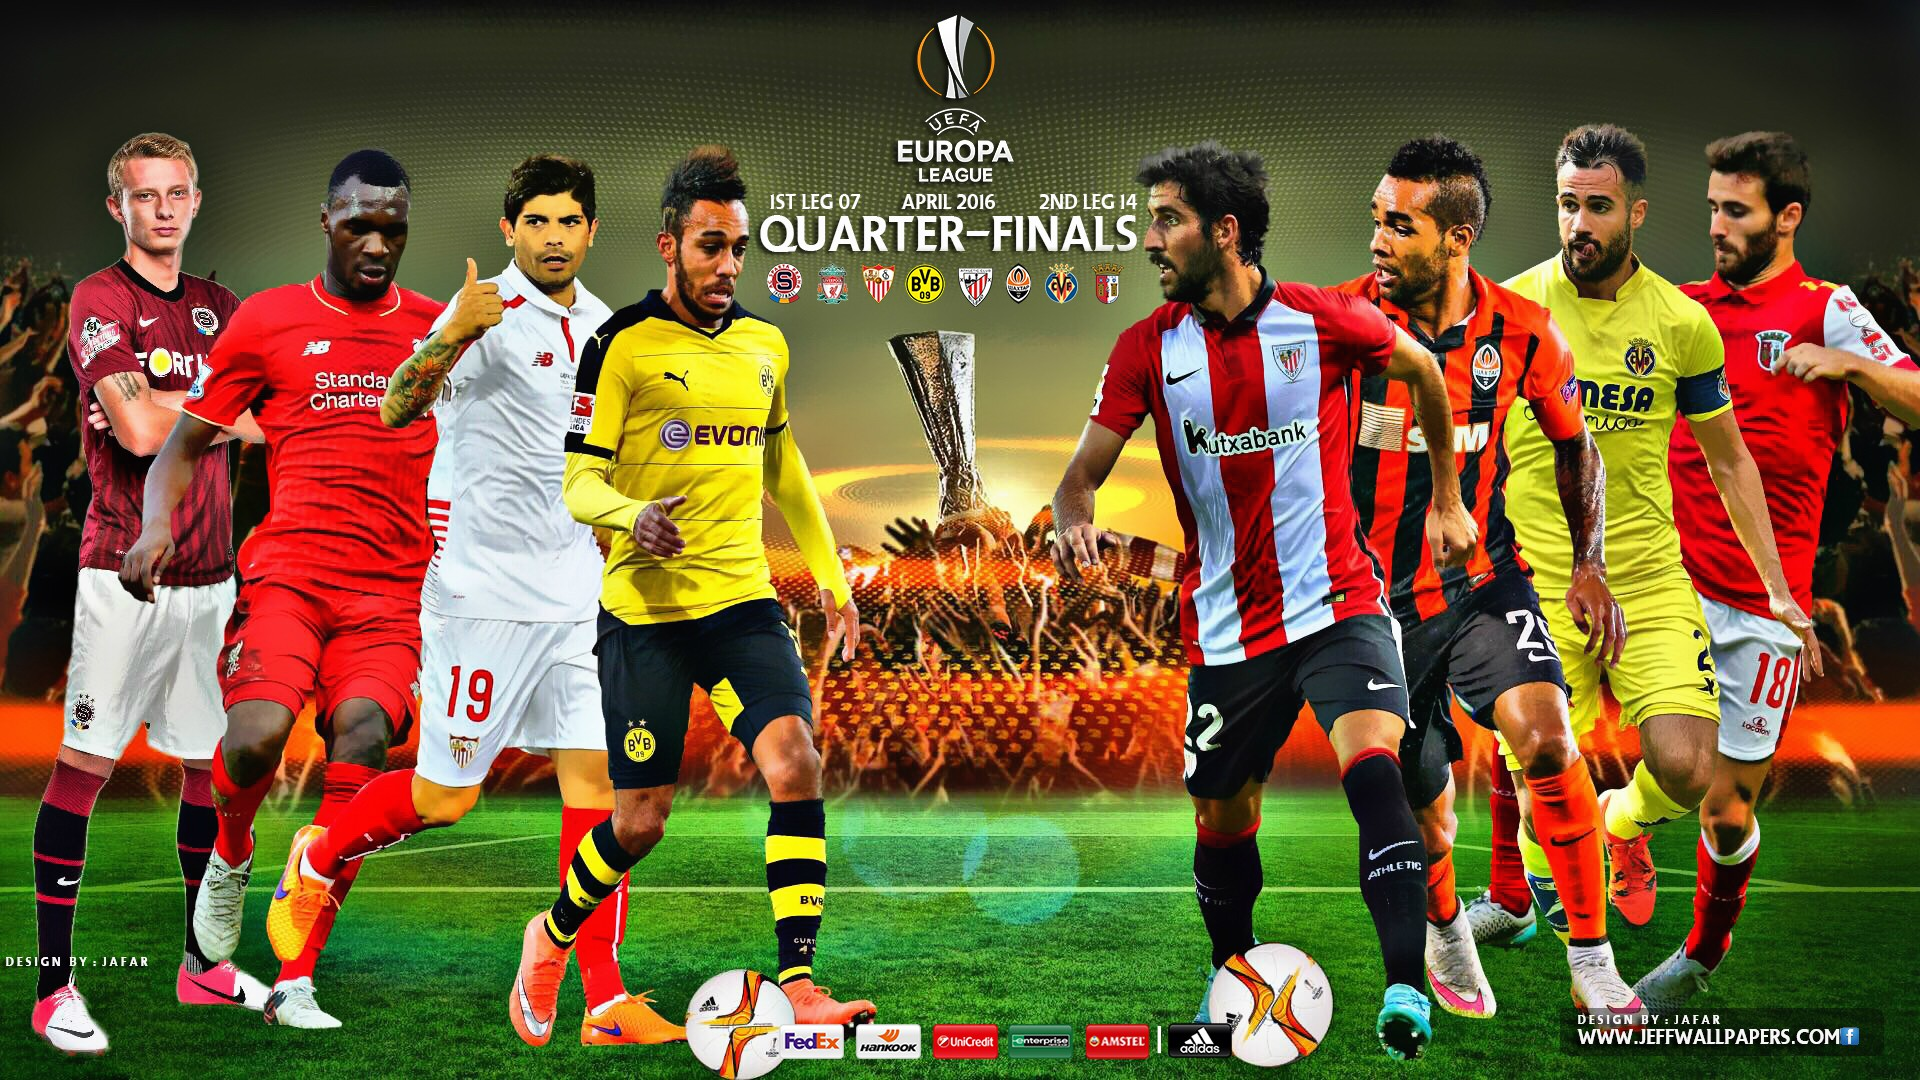 Europa league quarter finals 2016 wallpapers